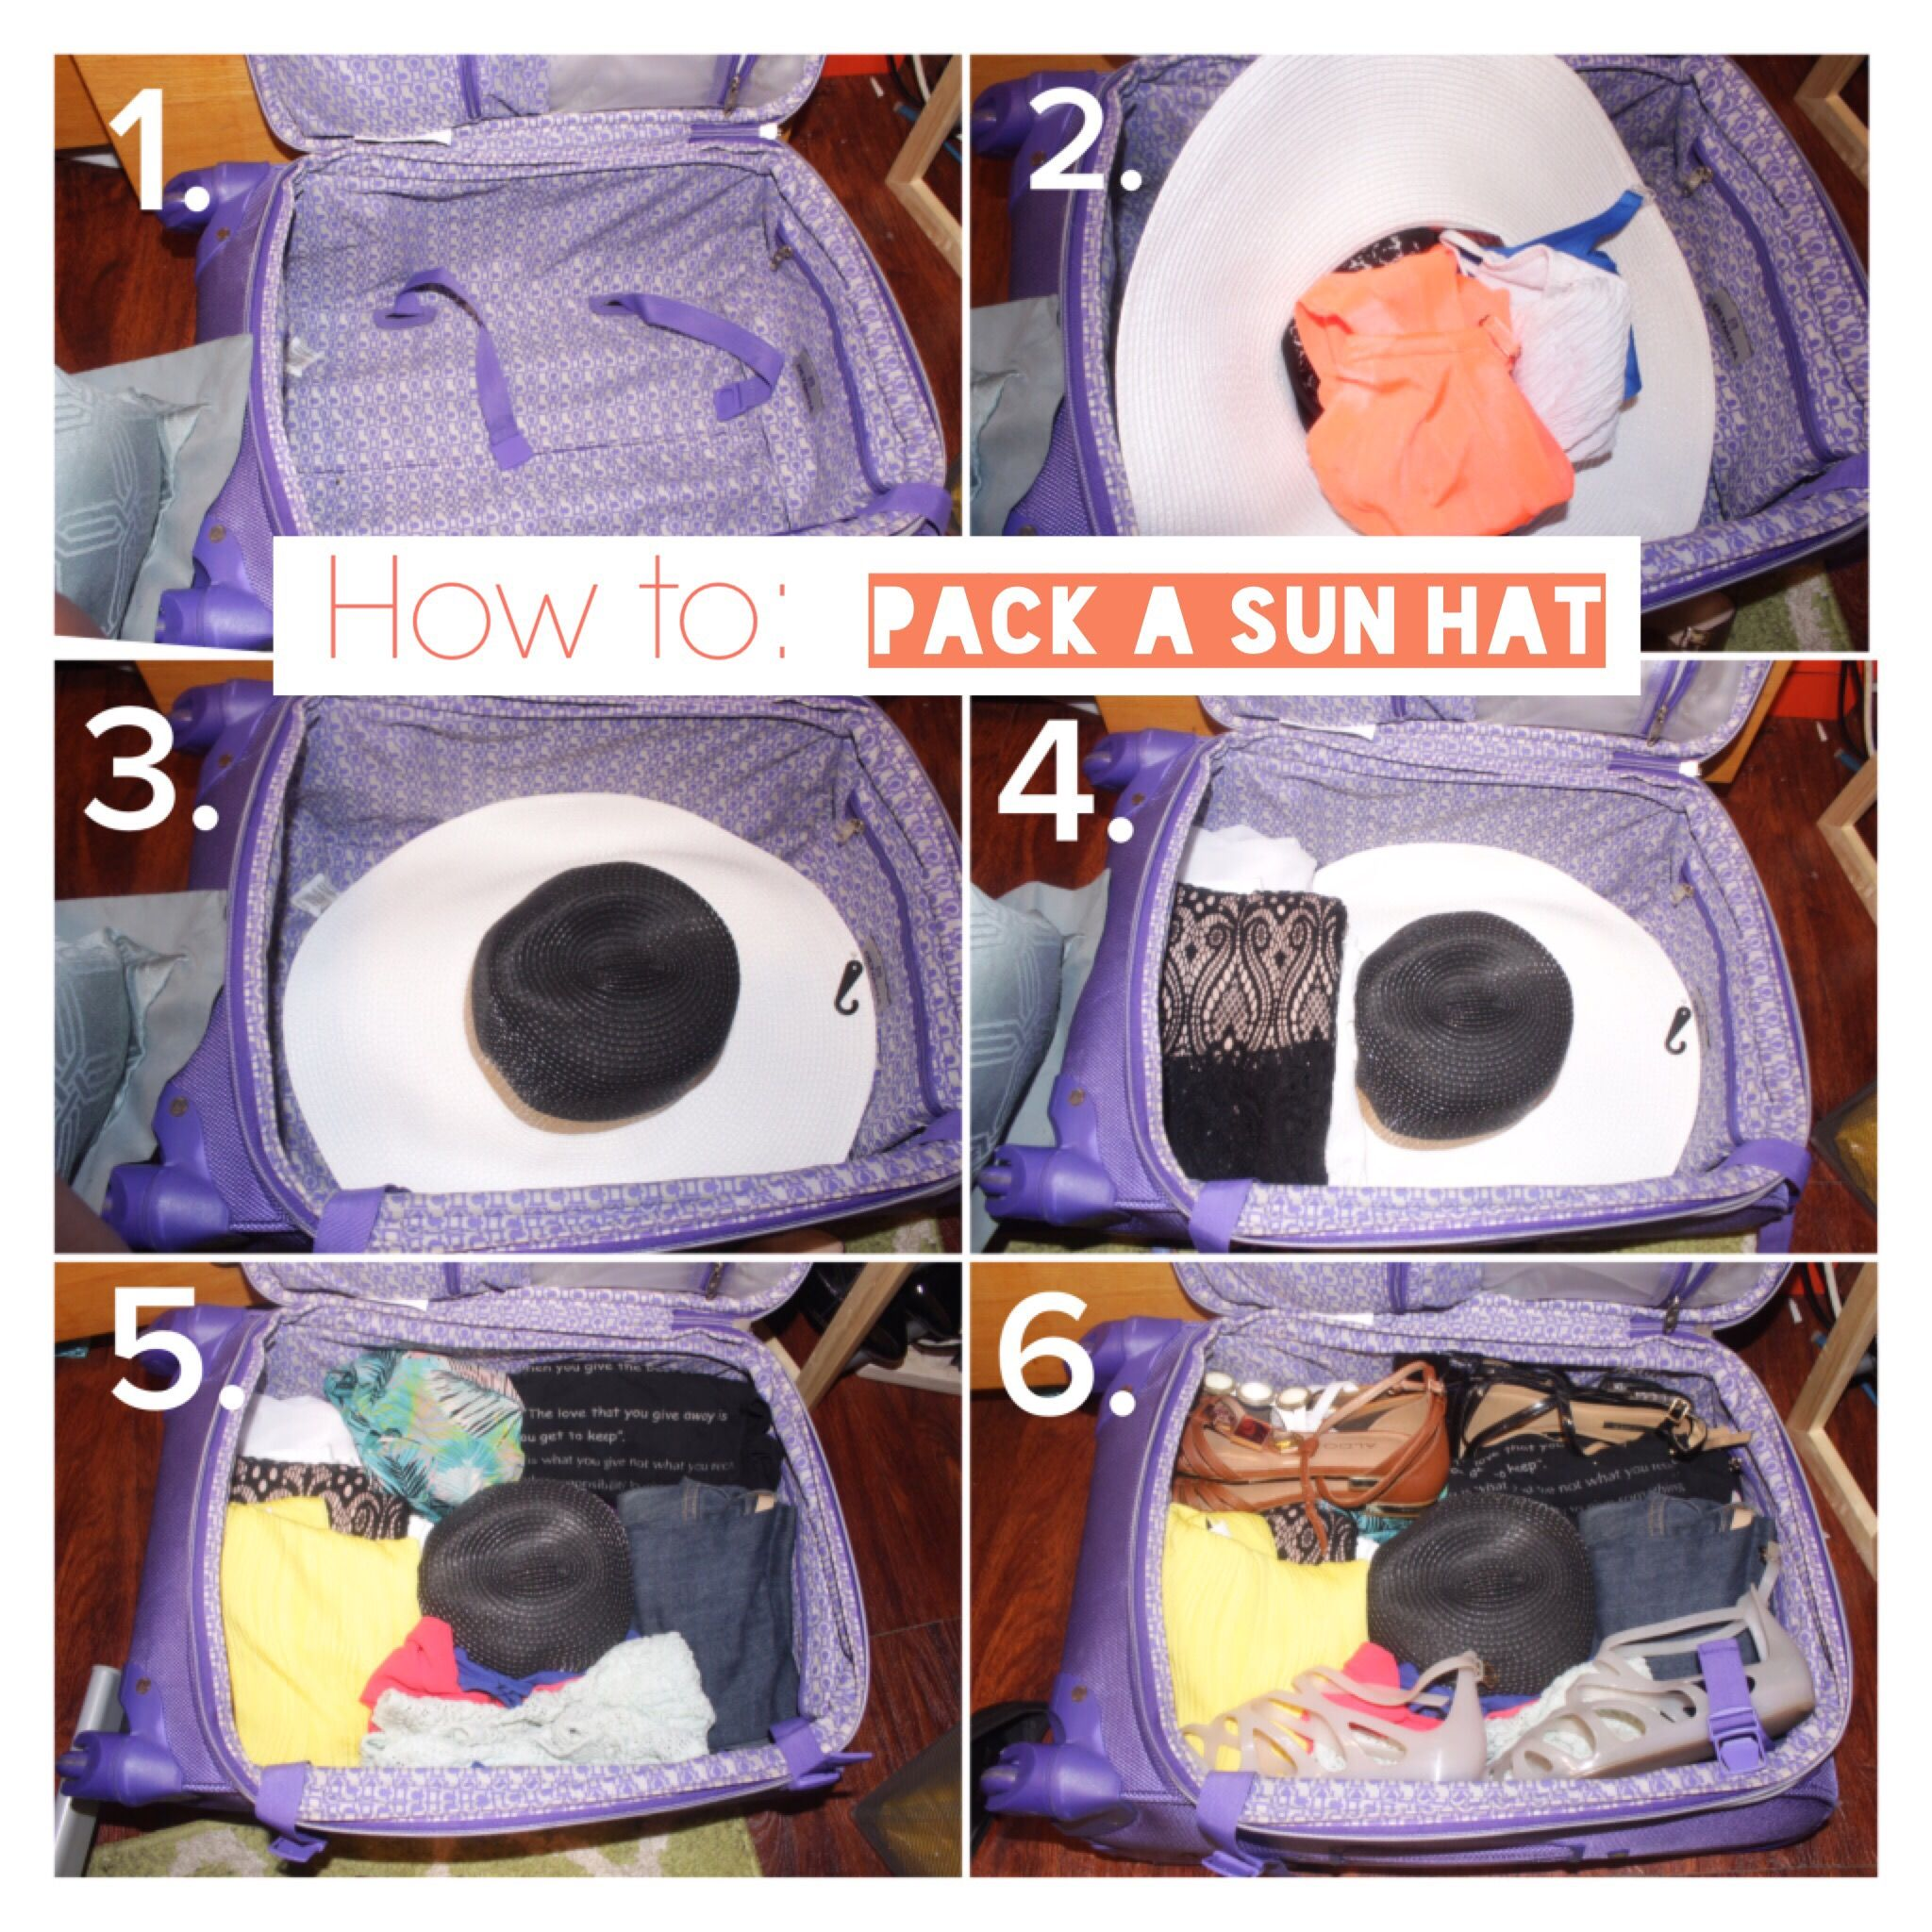 0513b3f6d How to: Pack a sun hat in a carry-on luggage with 6 easy steps ...